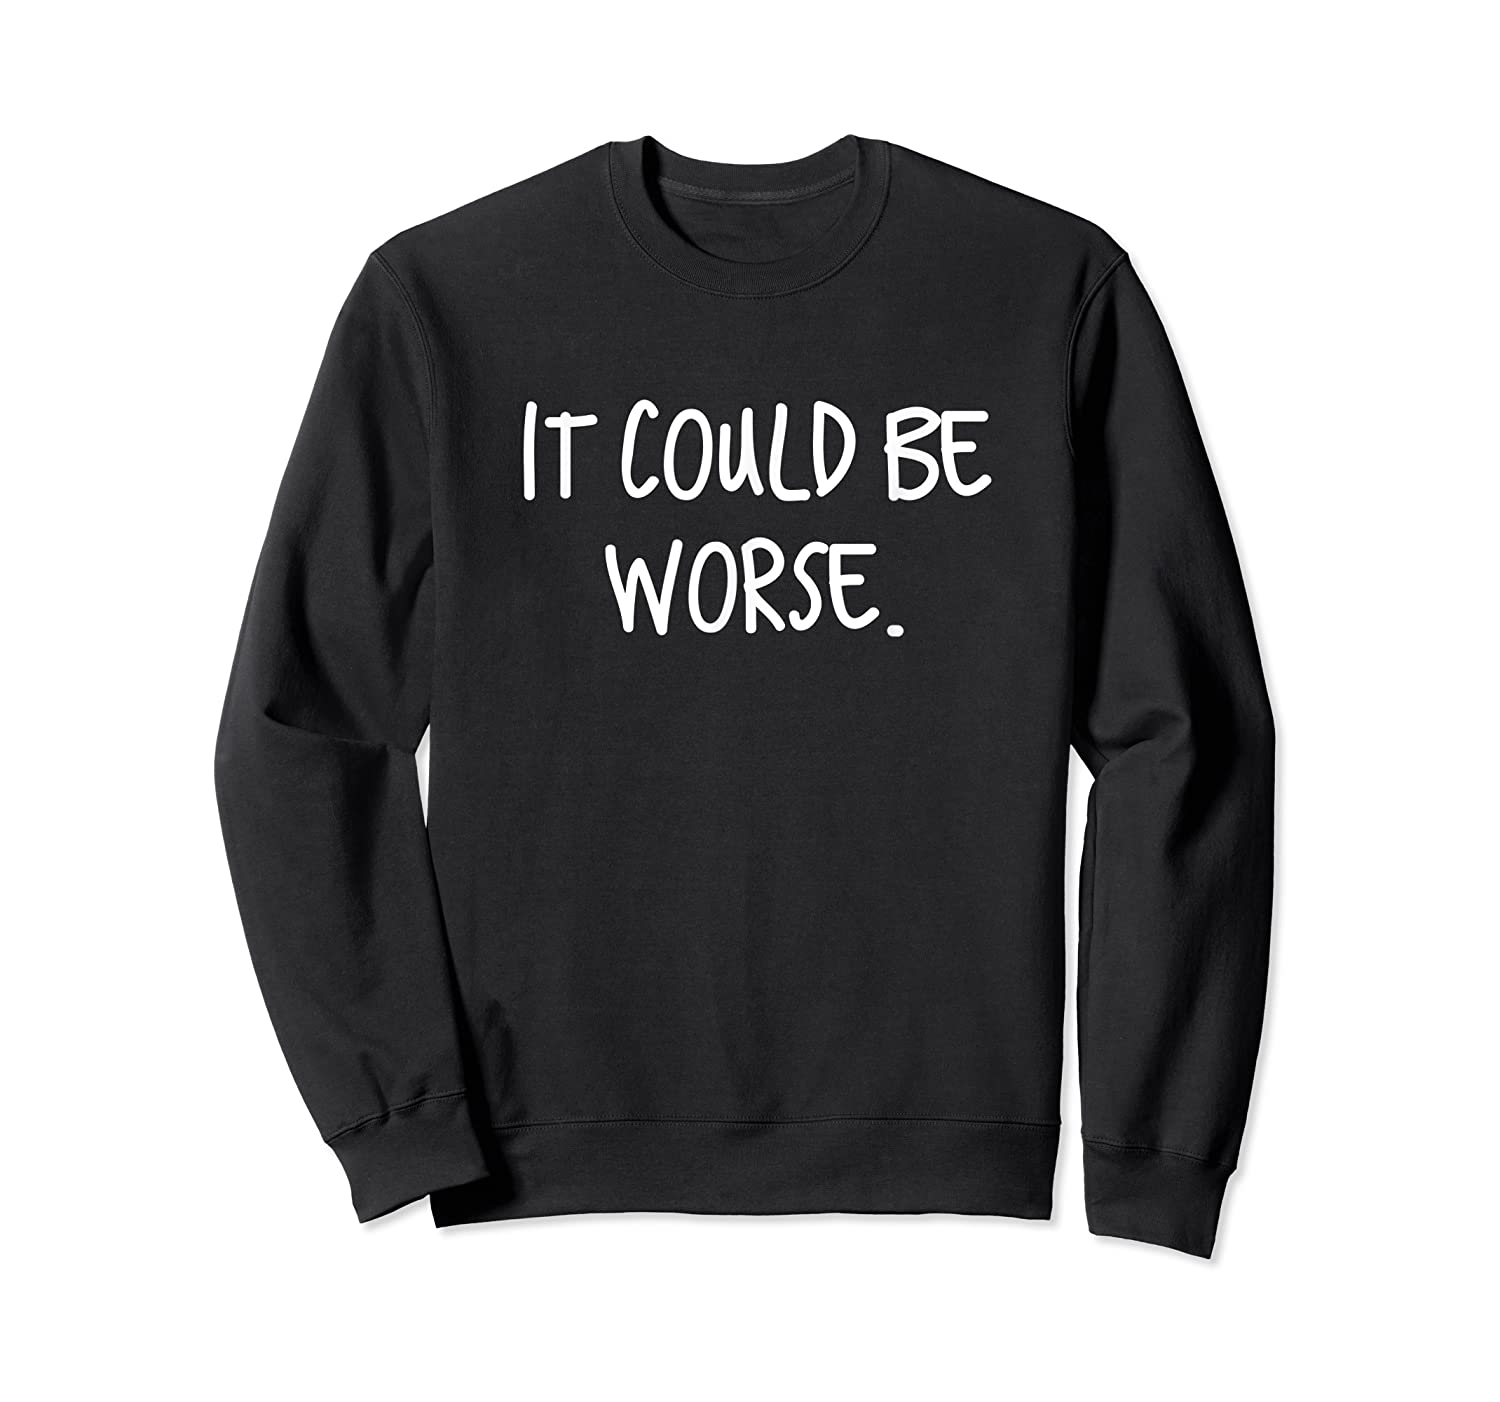 It Could Be Worse Funny Encouraget T-shirt Crewneck Sweater